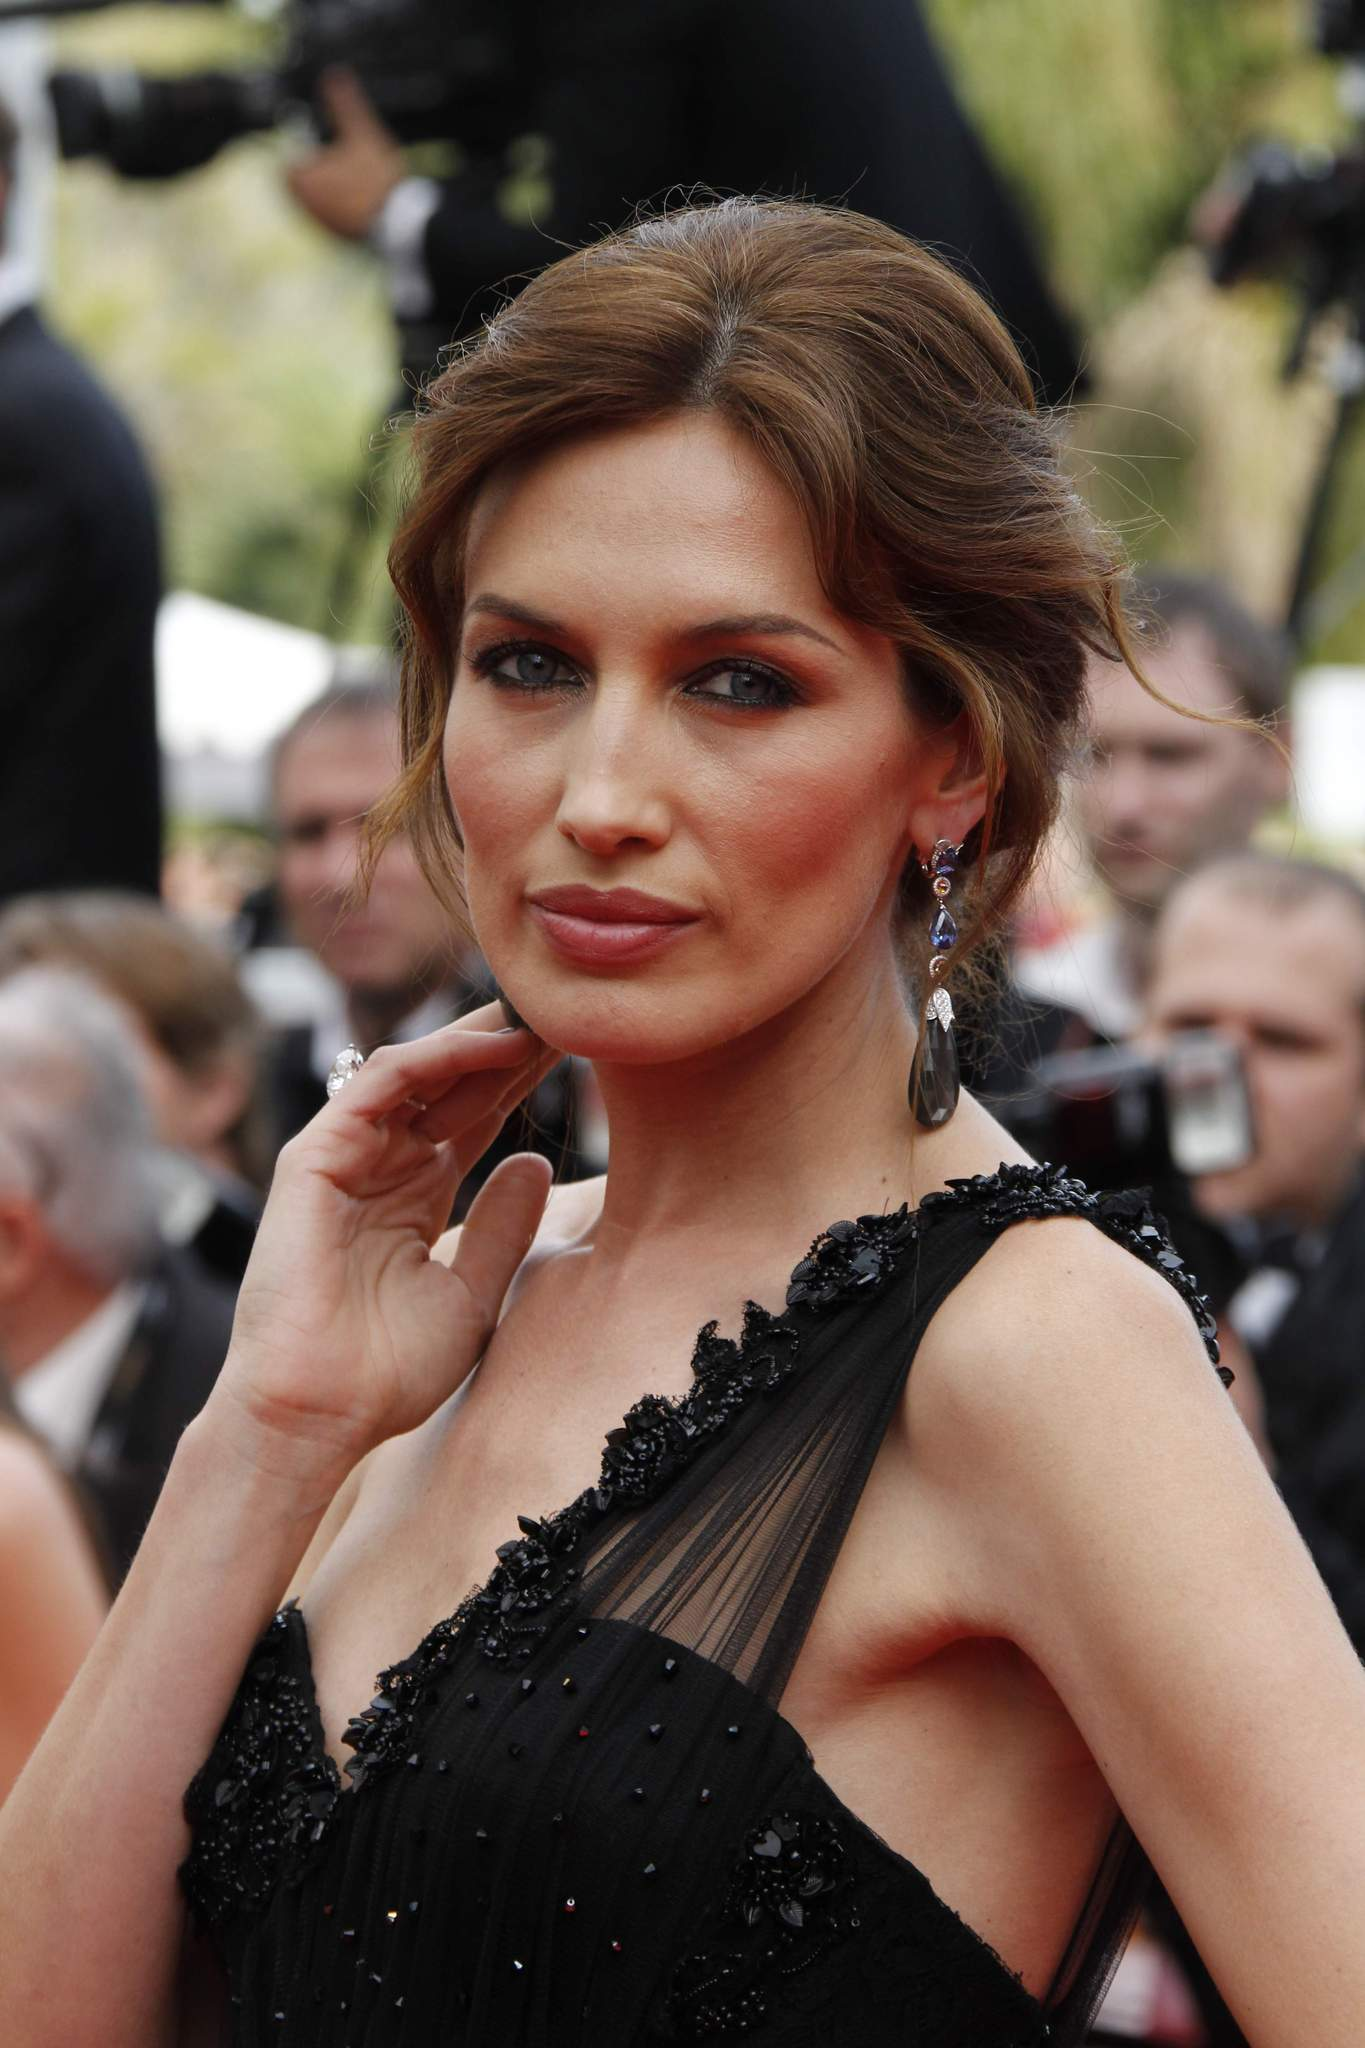 Instagram Nieves Alvarez nudes (92 foto and video), Topless, Fappening, Feet, swimsuit 2015